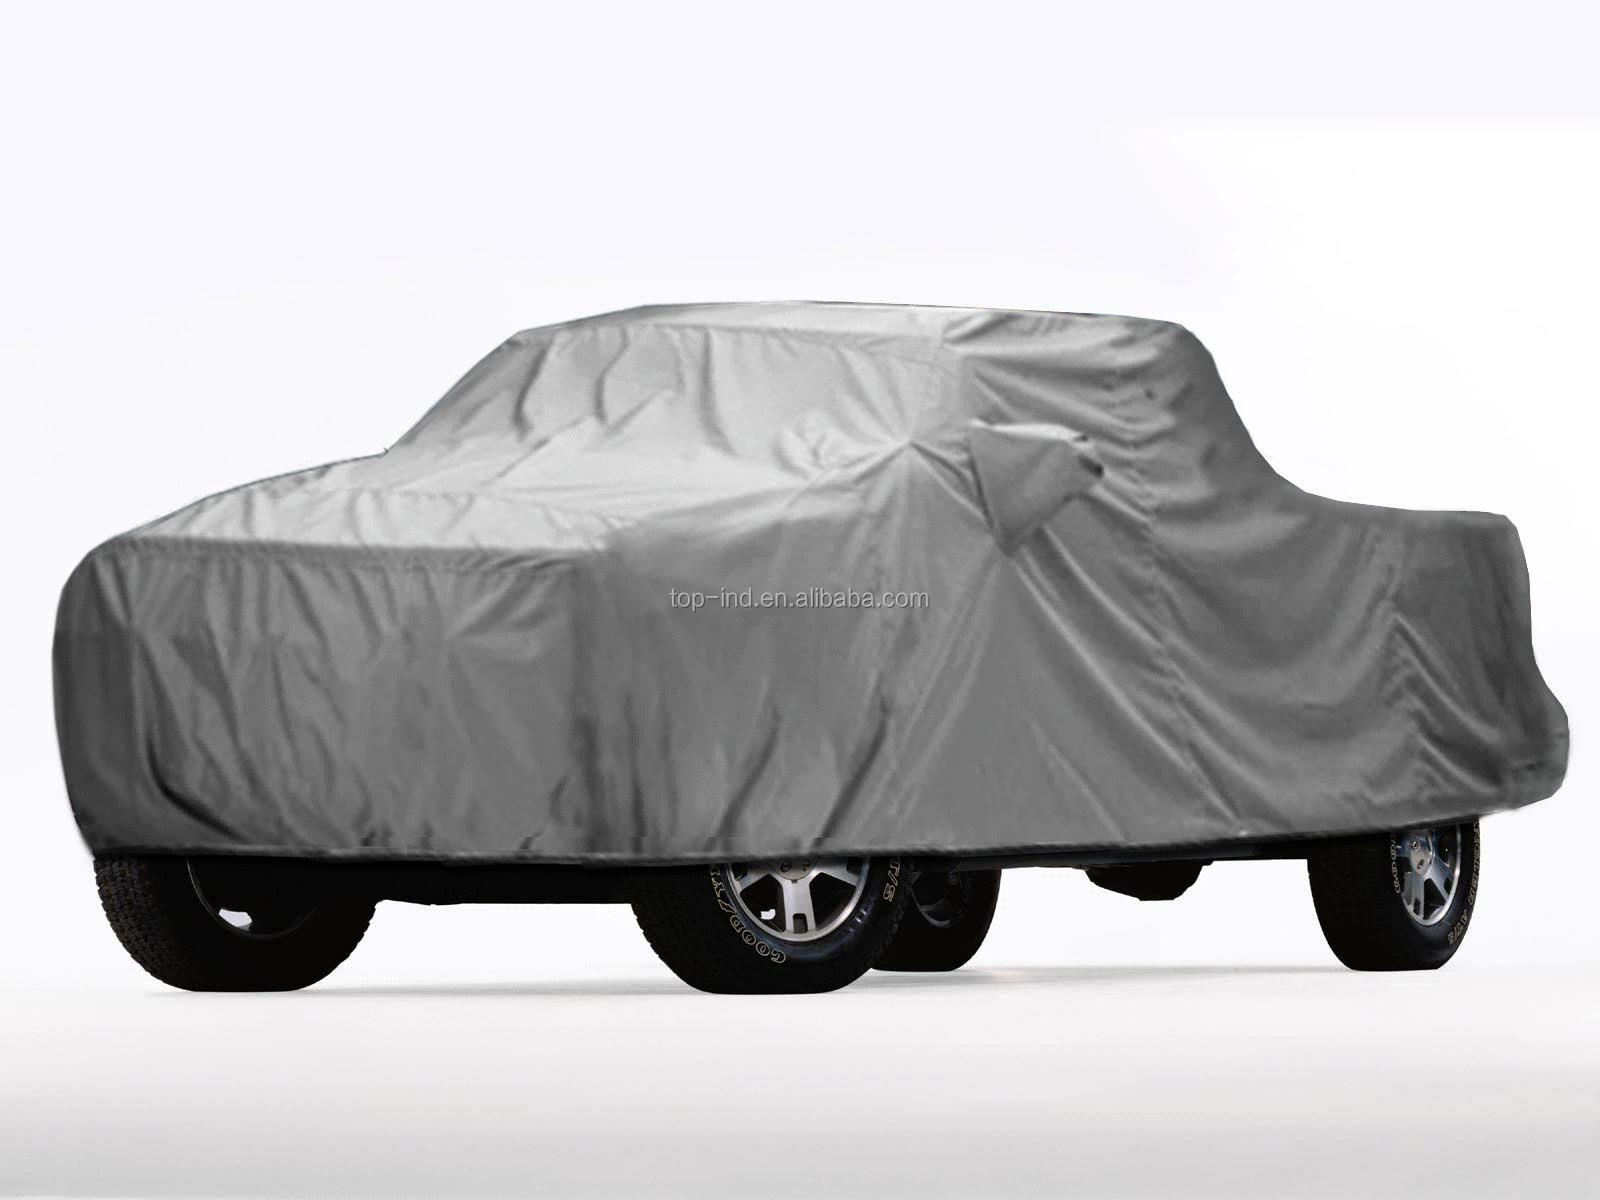 Hail protection and waterproof fabric inflatable car cover